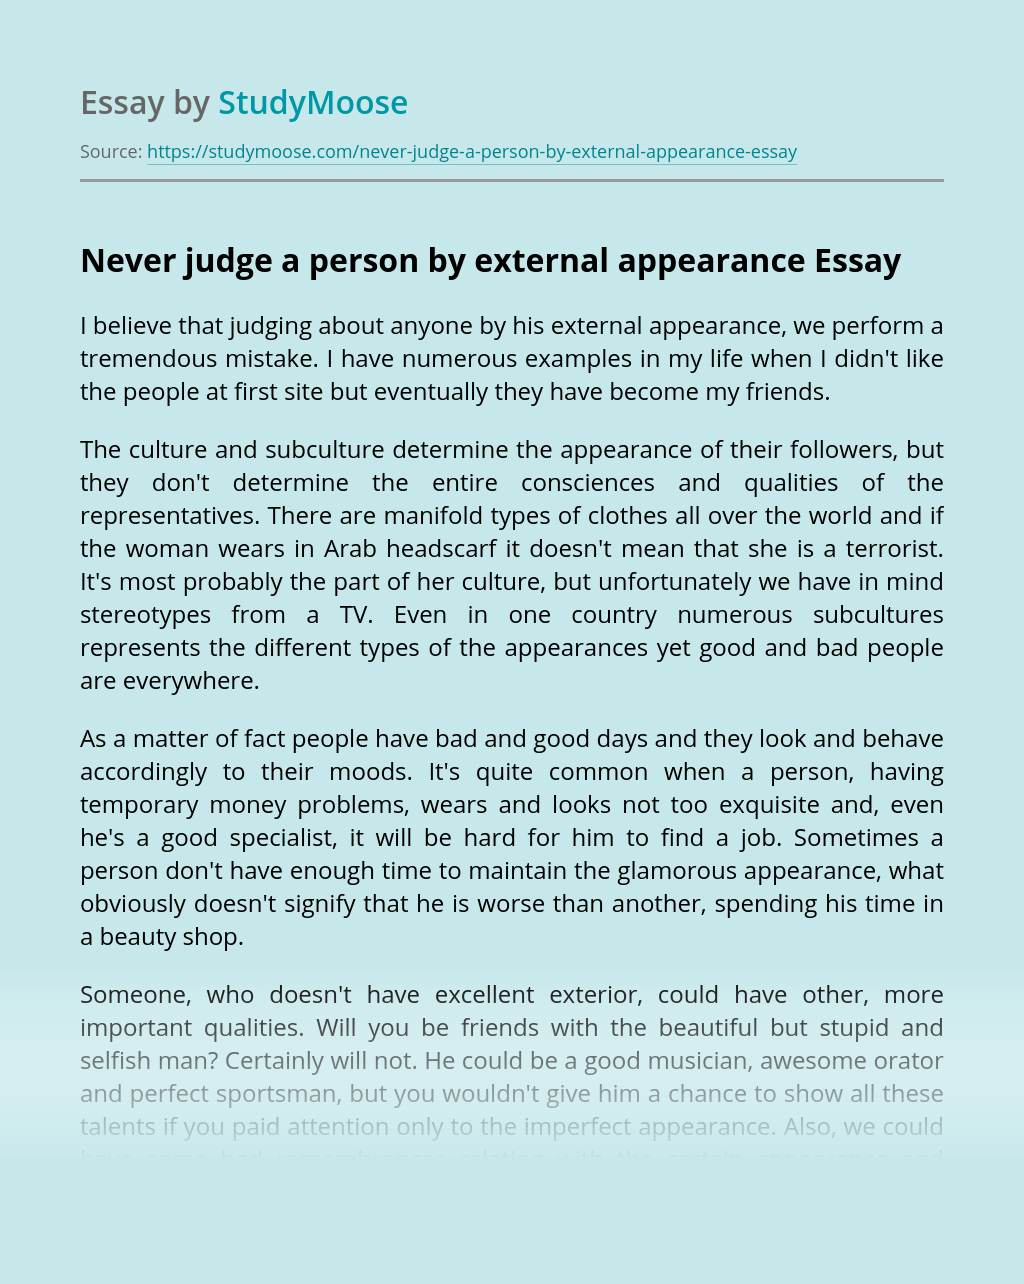 Never judge a person by external appearance